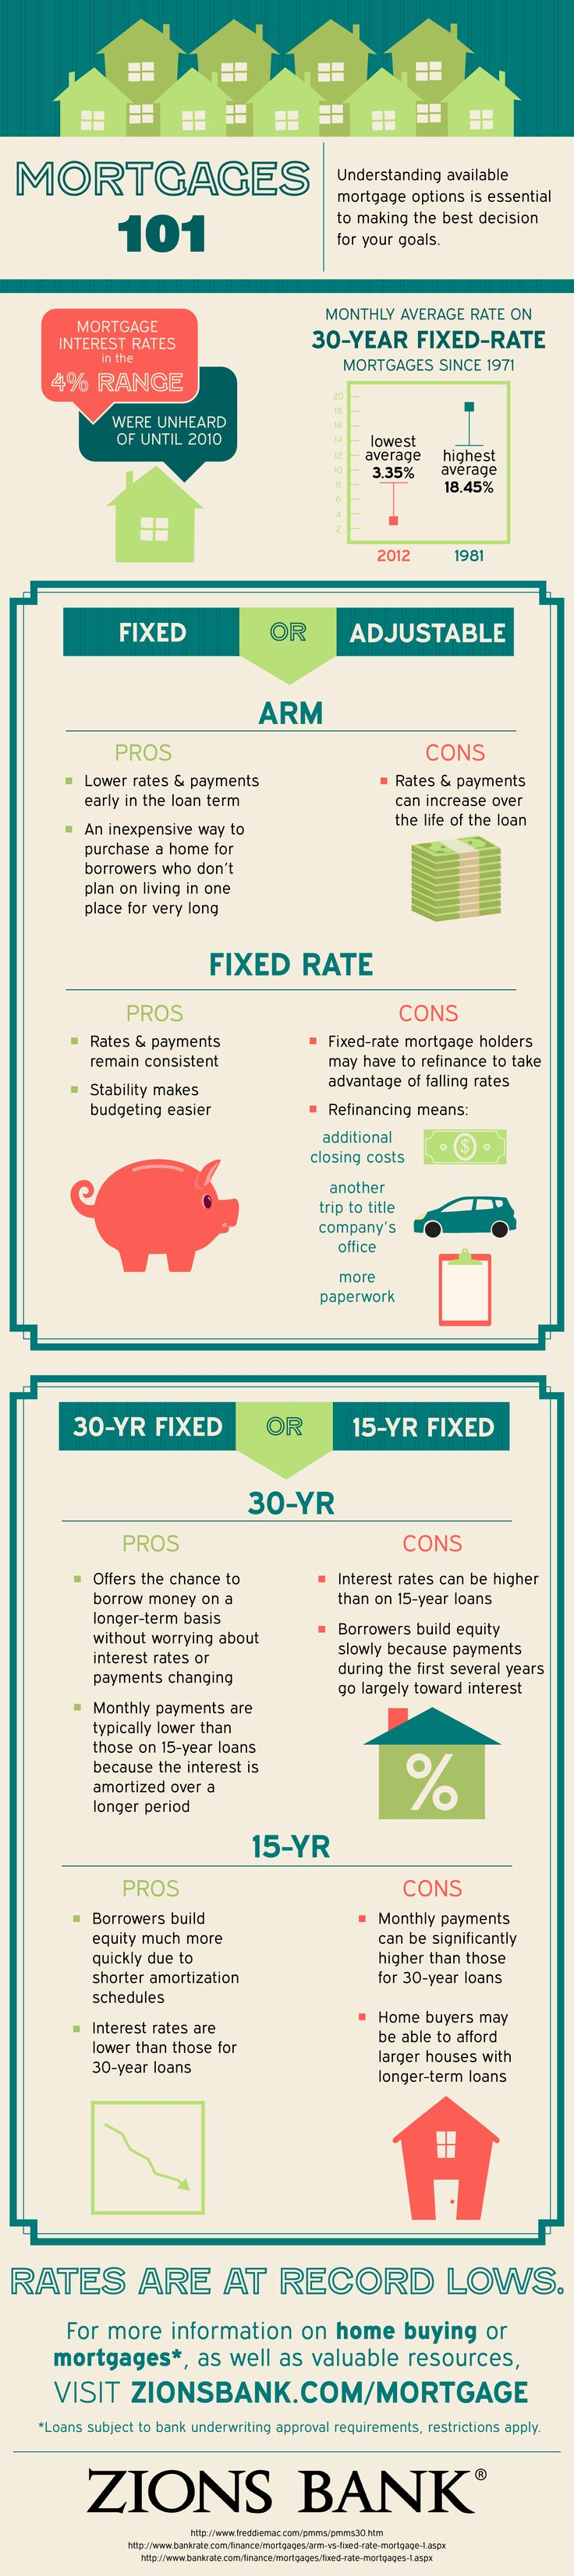 Mortgages 101: An Introduction to Interest Rates - Zions Bank Blog #infographic